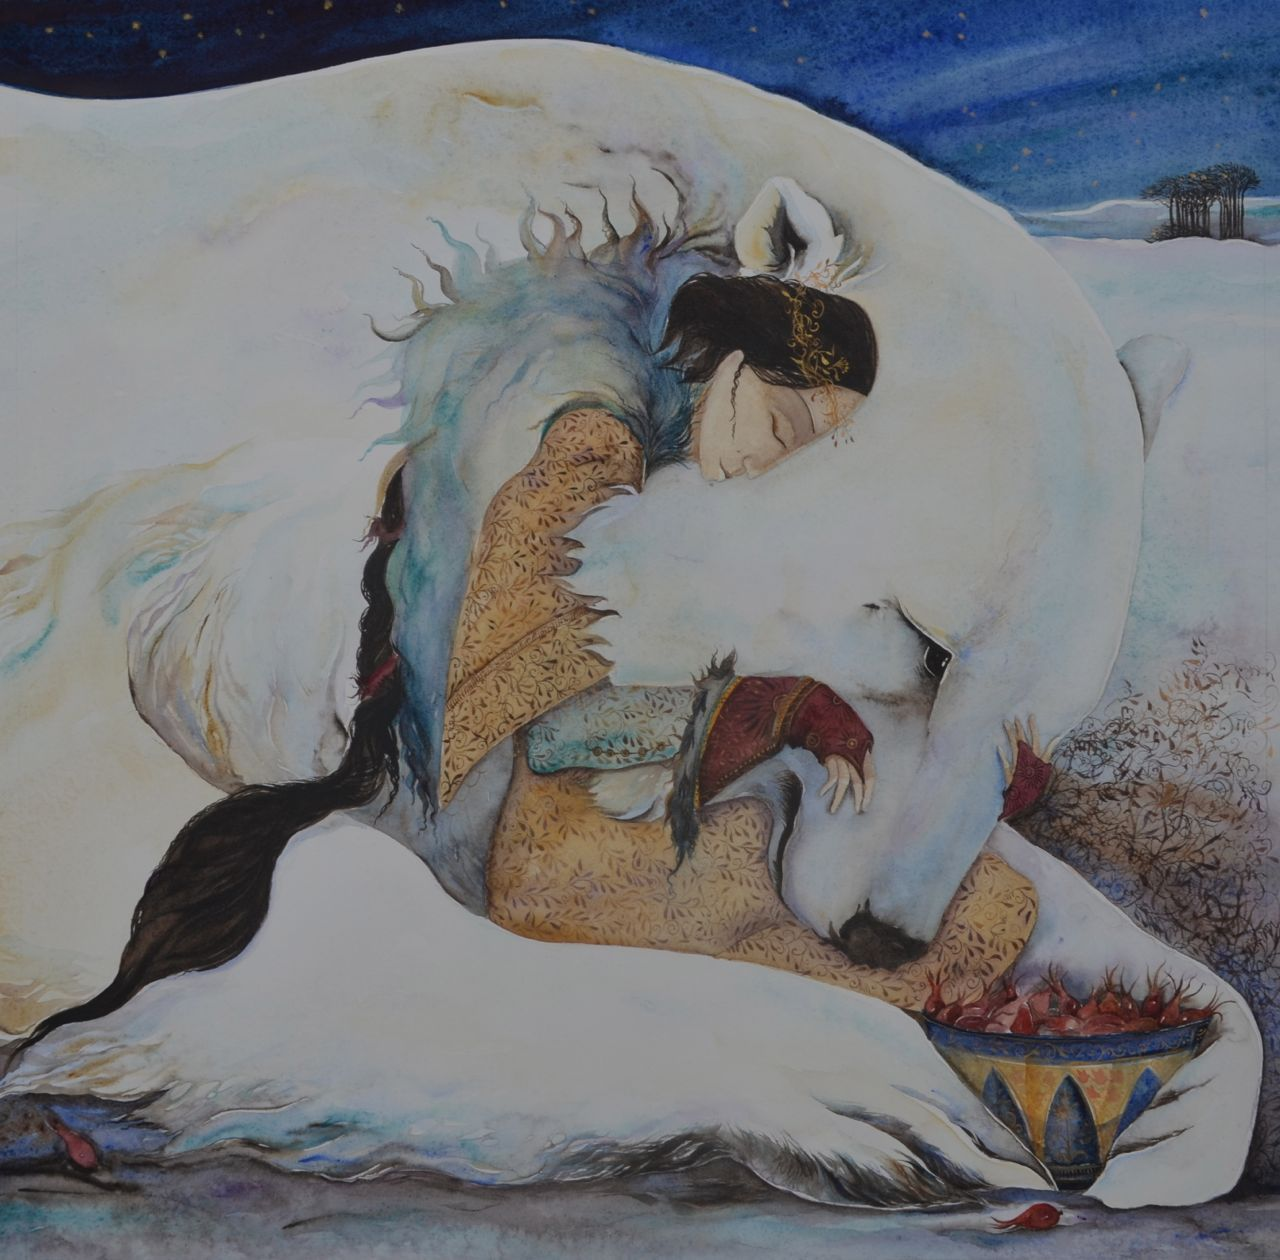 White bear and woman with rosehips in a bowl Art, Animal art